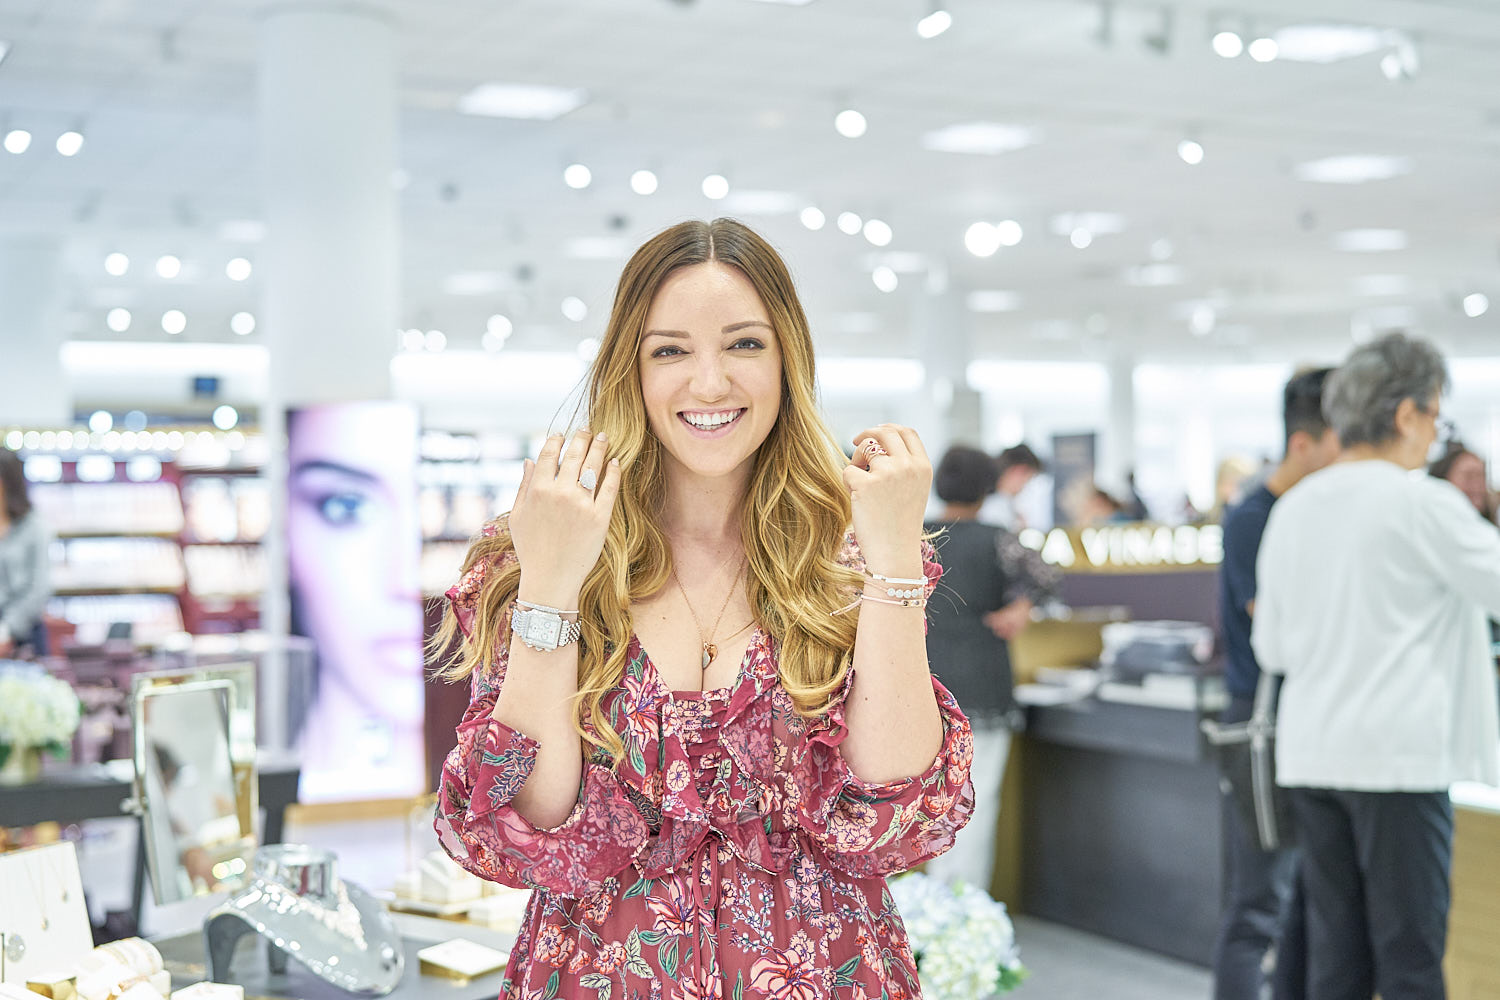 Jennifer Henry-Novich showing all the pretty jewellery she is trying during the event.